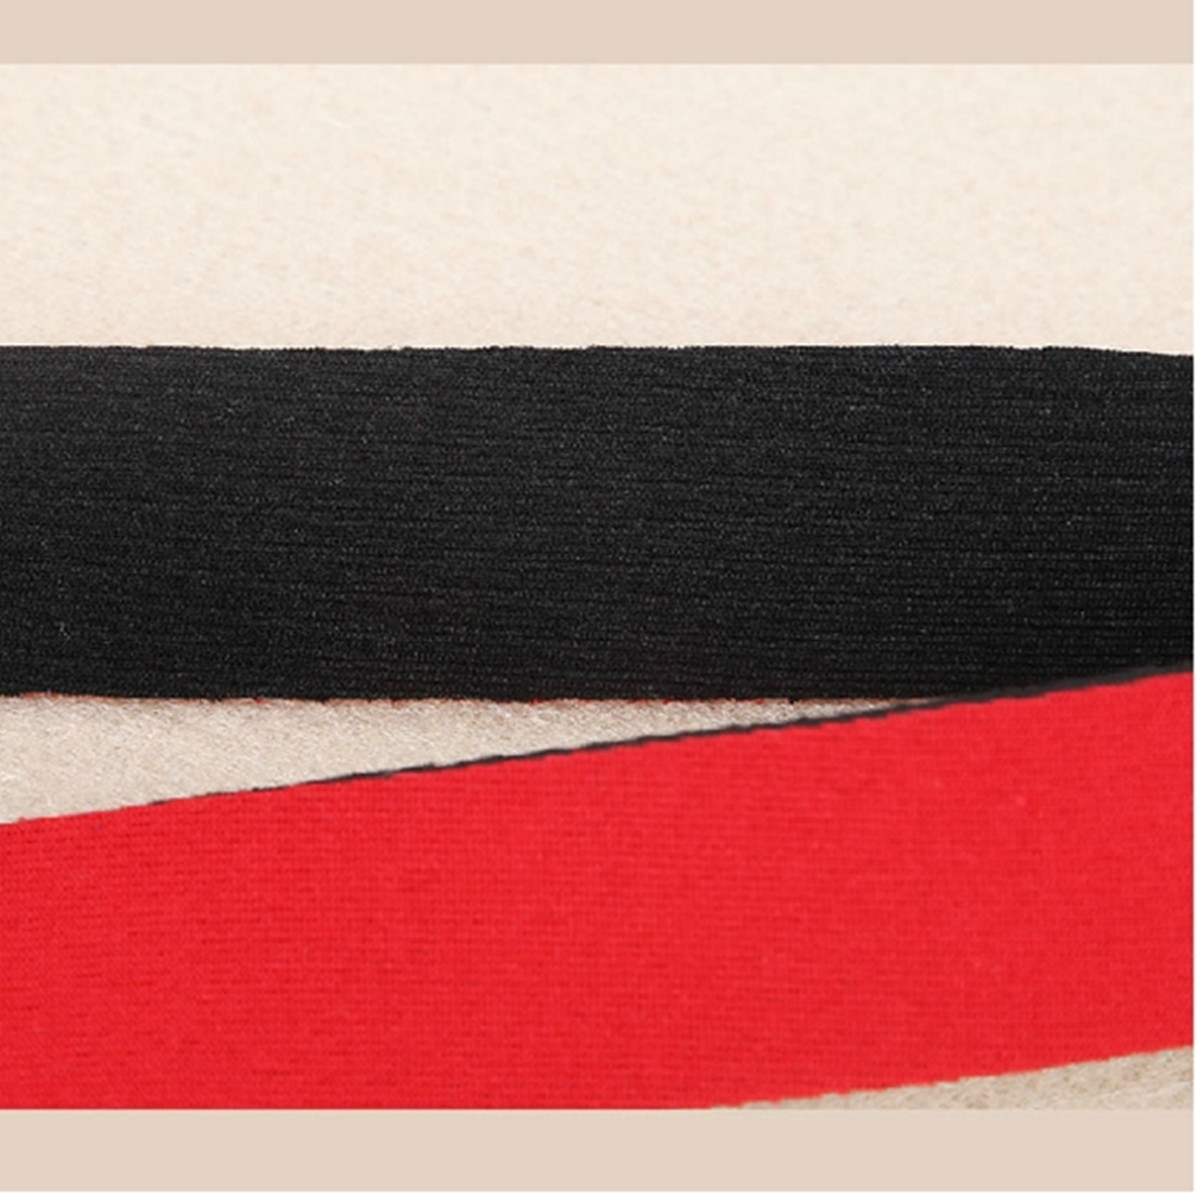 eyeglasses strap for sports  sports band neck cord